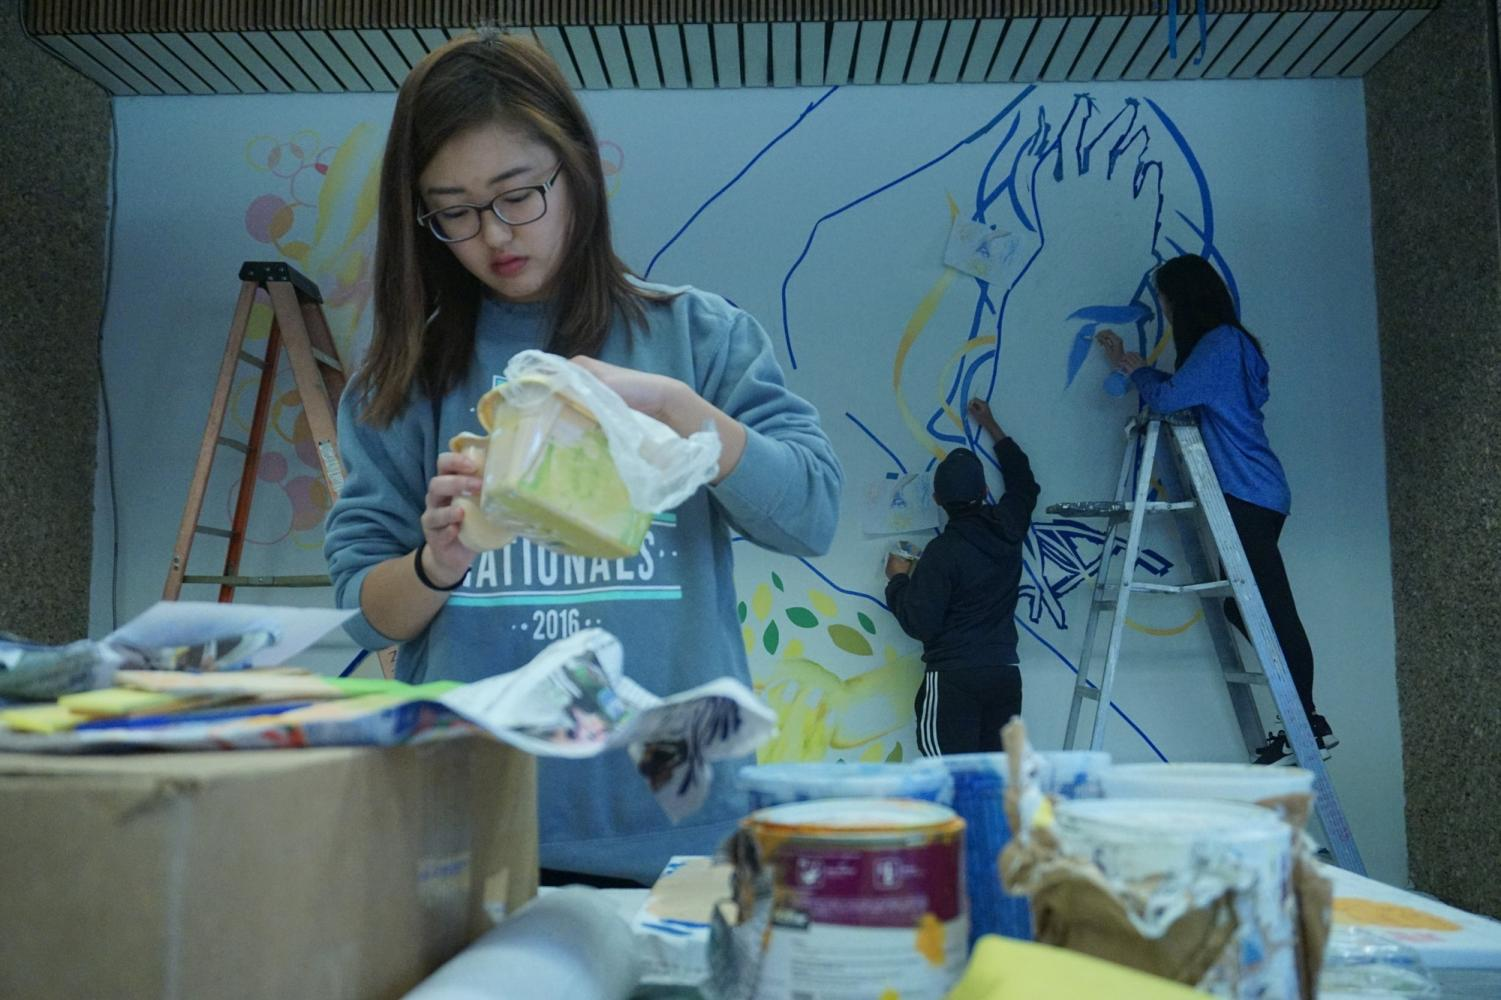 Tokyo-originating fine arts major chosen to paint mural in Student Activities Center